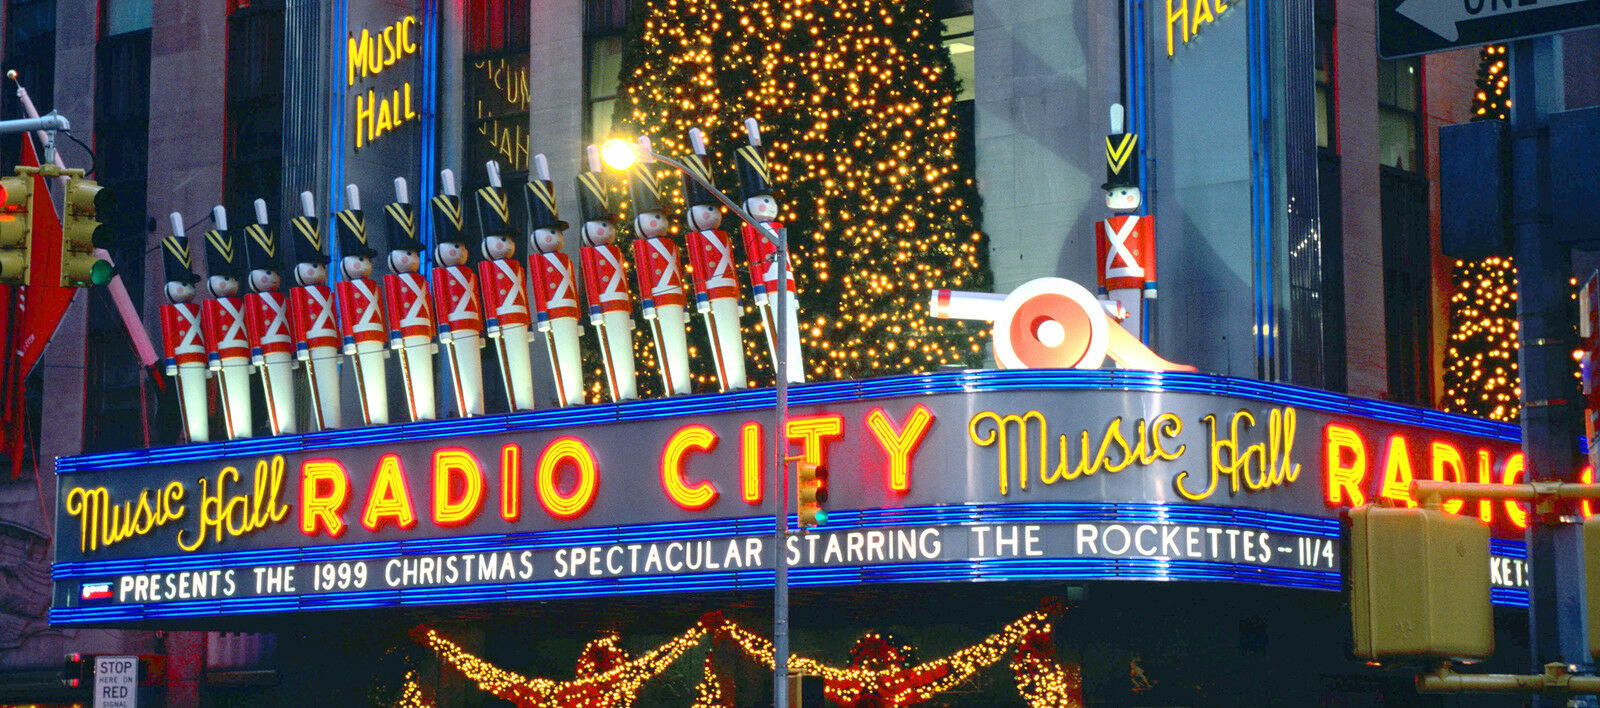 Tickets to Christmas Spectacular Starring the Radio City Rockettes ...